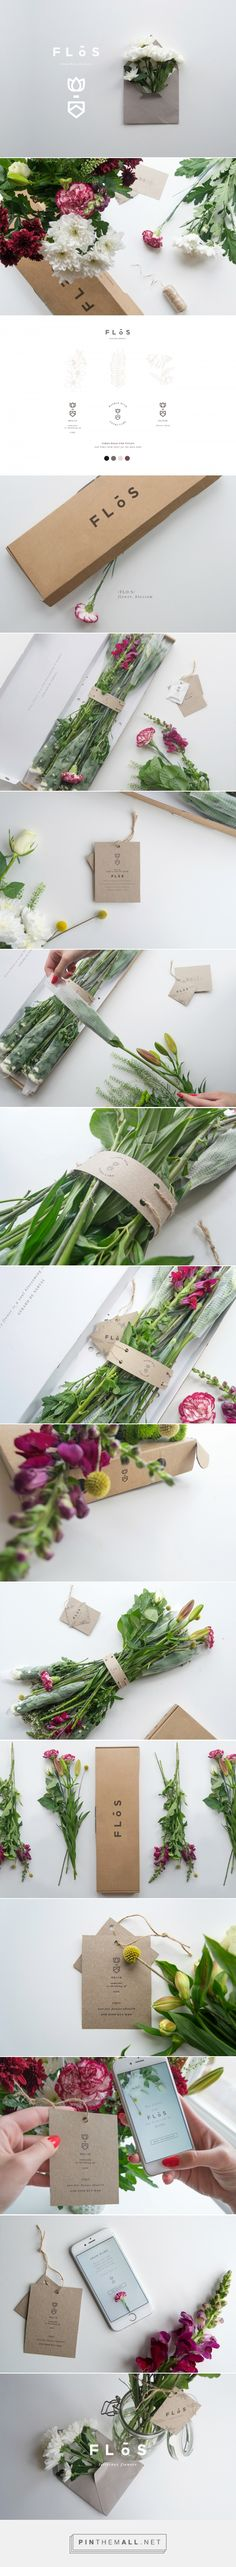 Flōs - Letterbox Flowers Logo Design & Packaging by Giadaland…